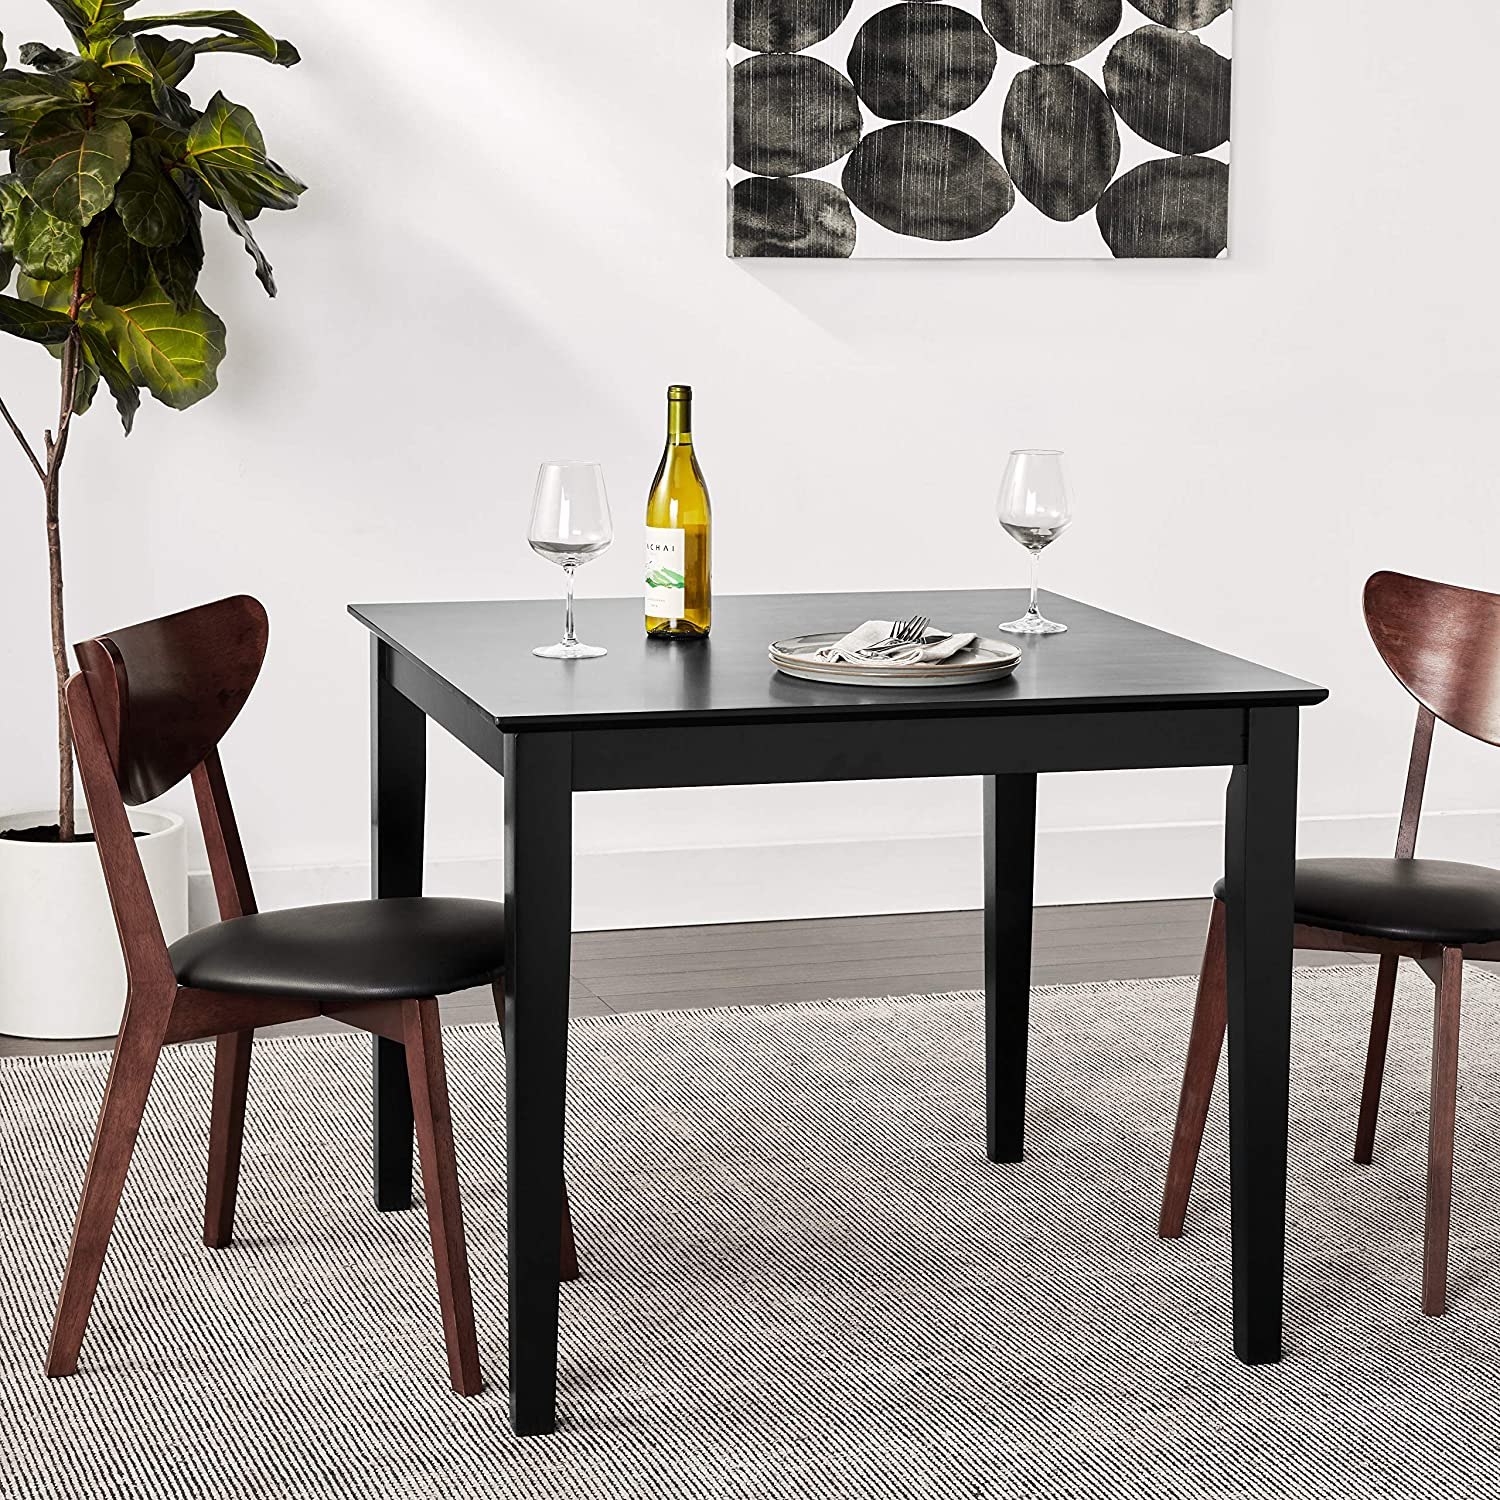 International Concepts Solid Wood Dining Table with Shaker Legs 36 by 36 by 30-Inch Black